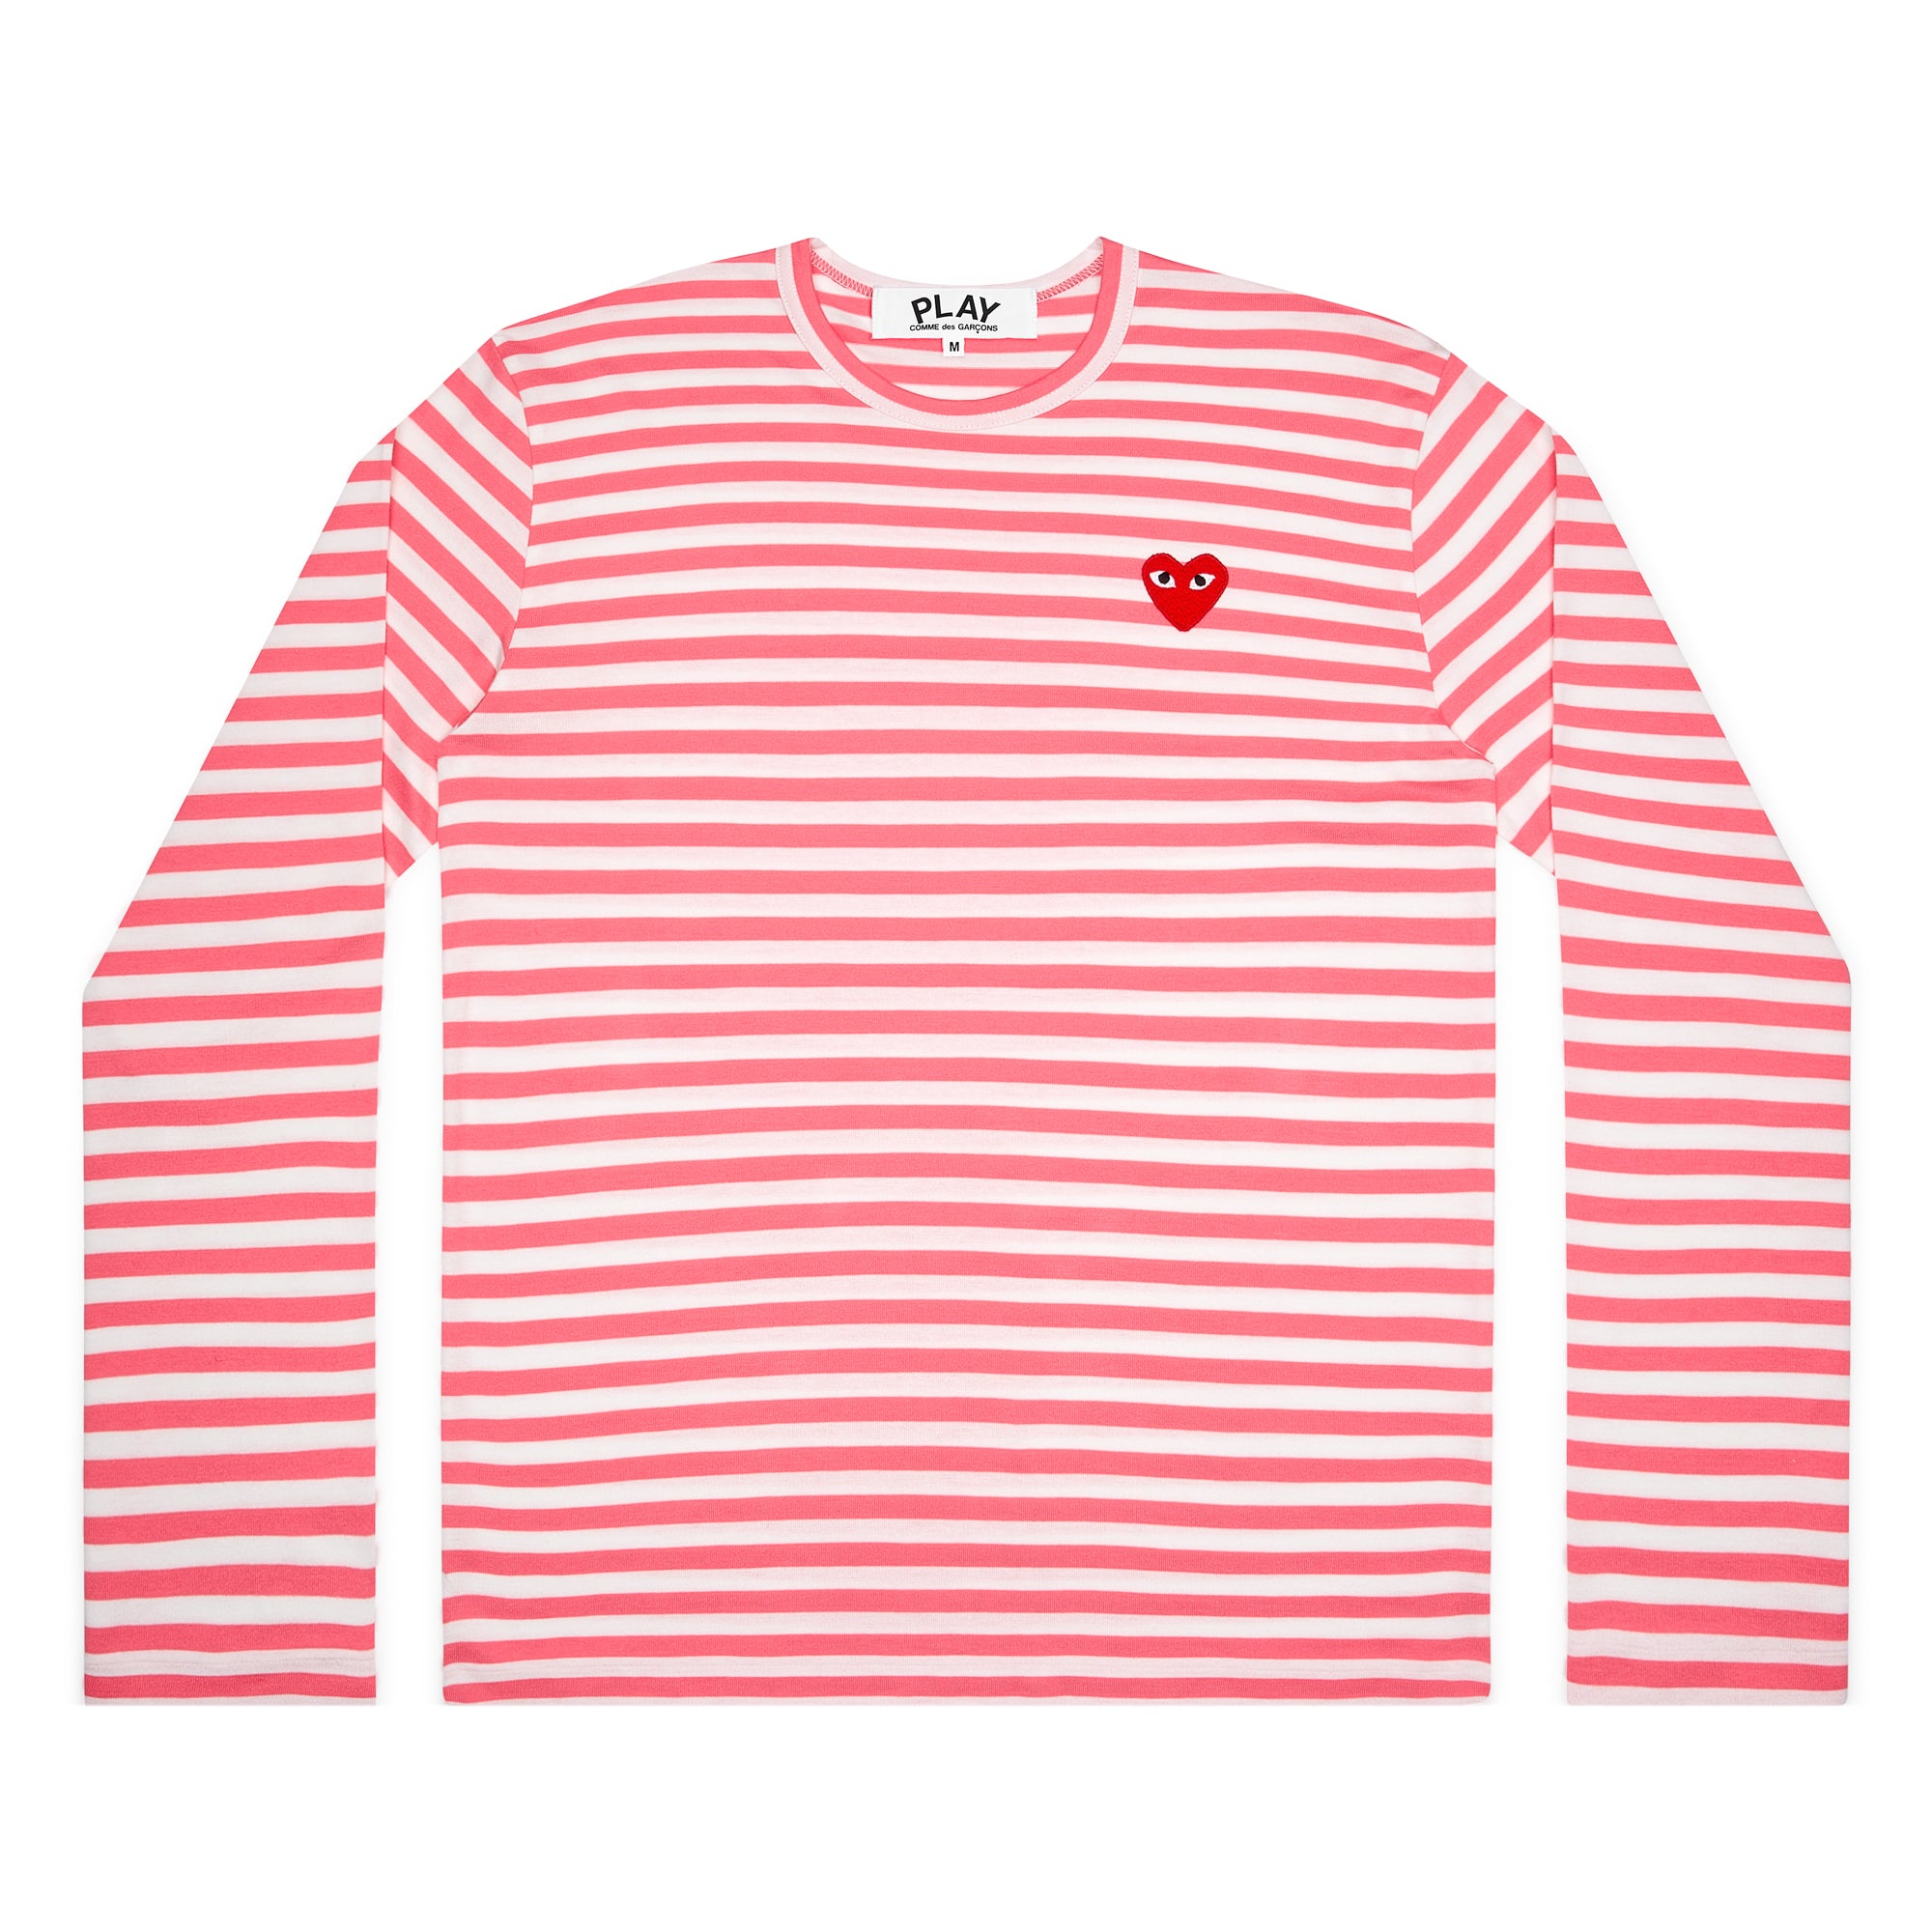 Play Comme des Garçons Bright Striped Long Sleeve (Pink)